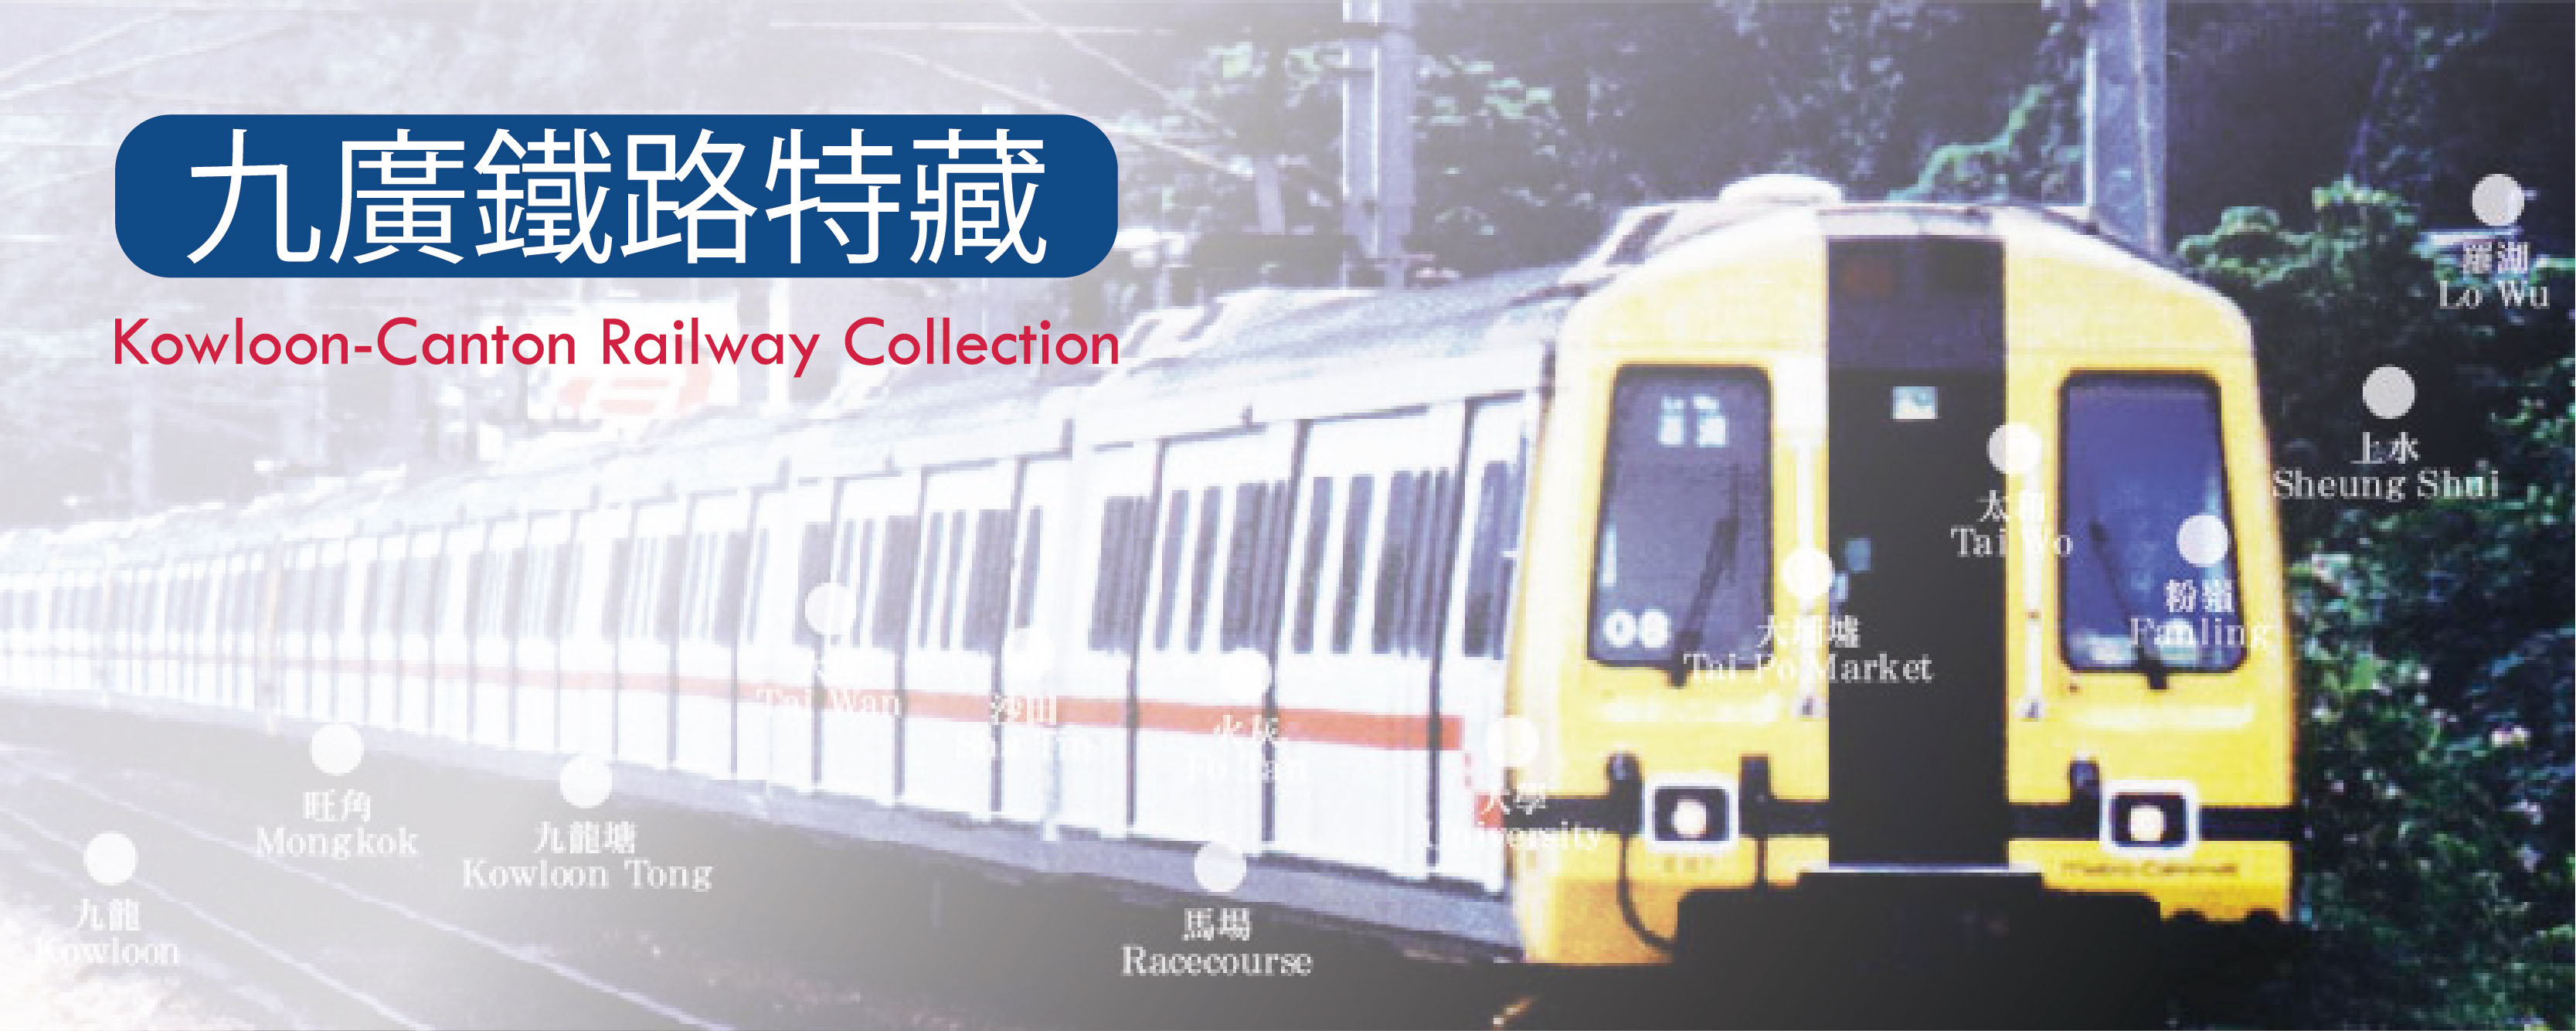 Kowloon-Canton Railway Collection